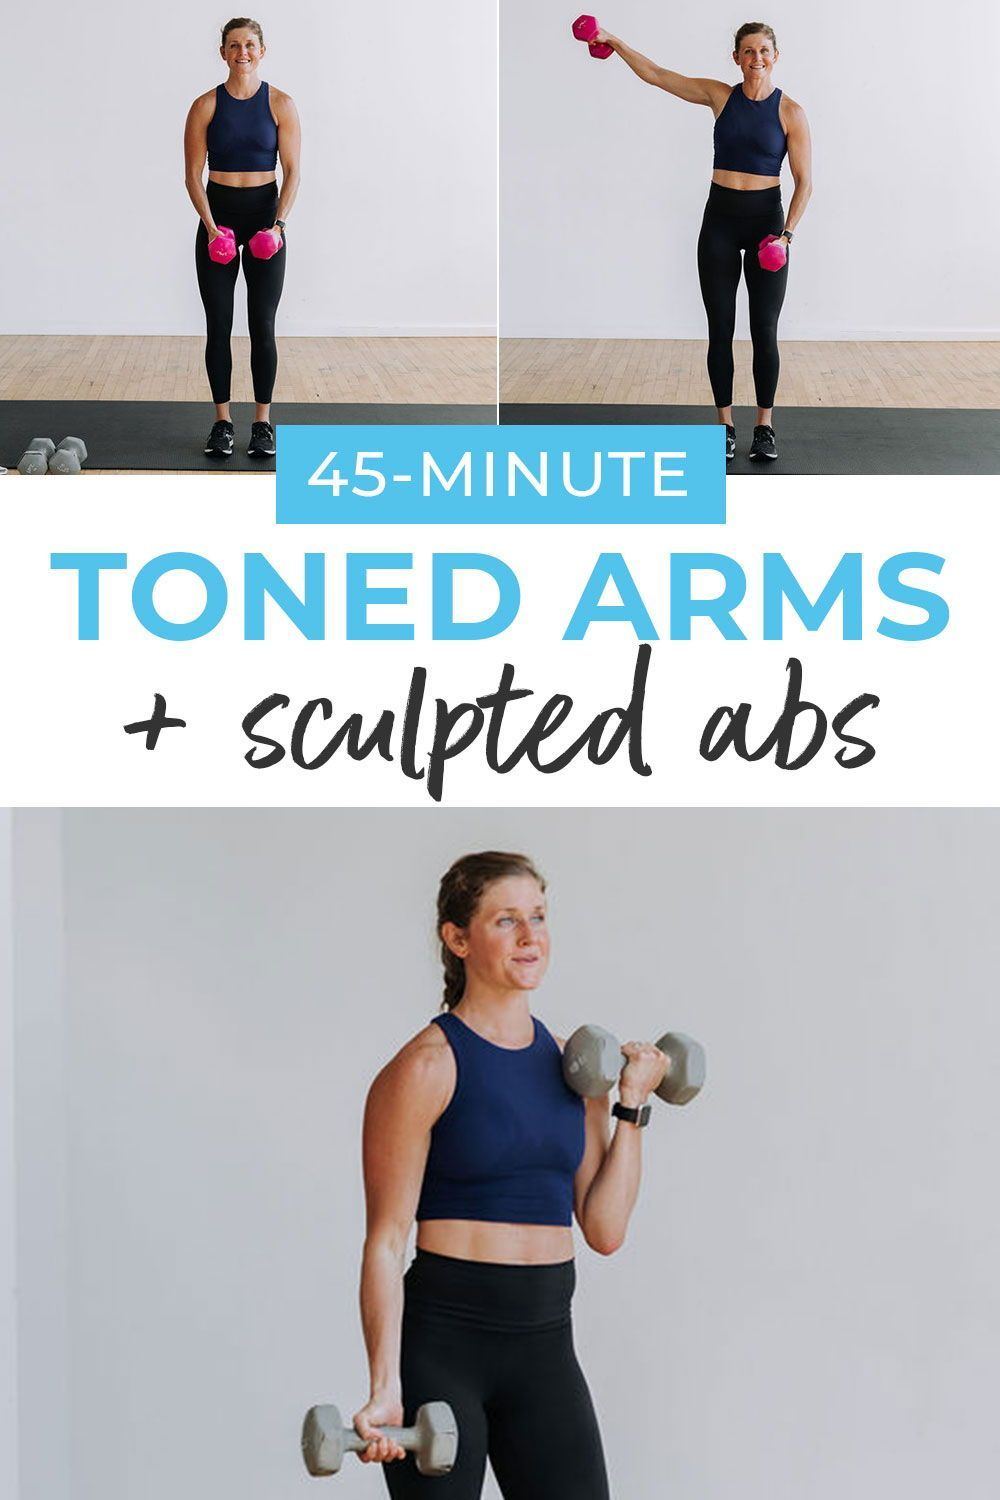 45-Minute Arms and Abs Workout: Drop Set Format| Nourish Move Love